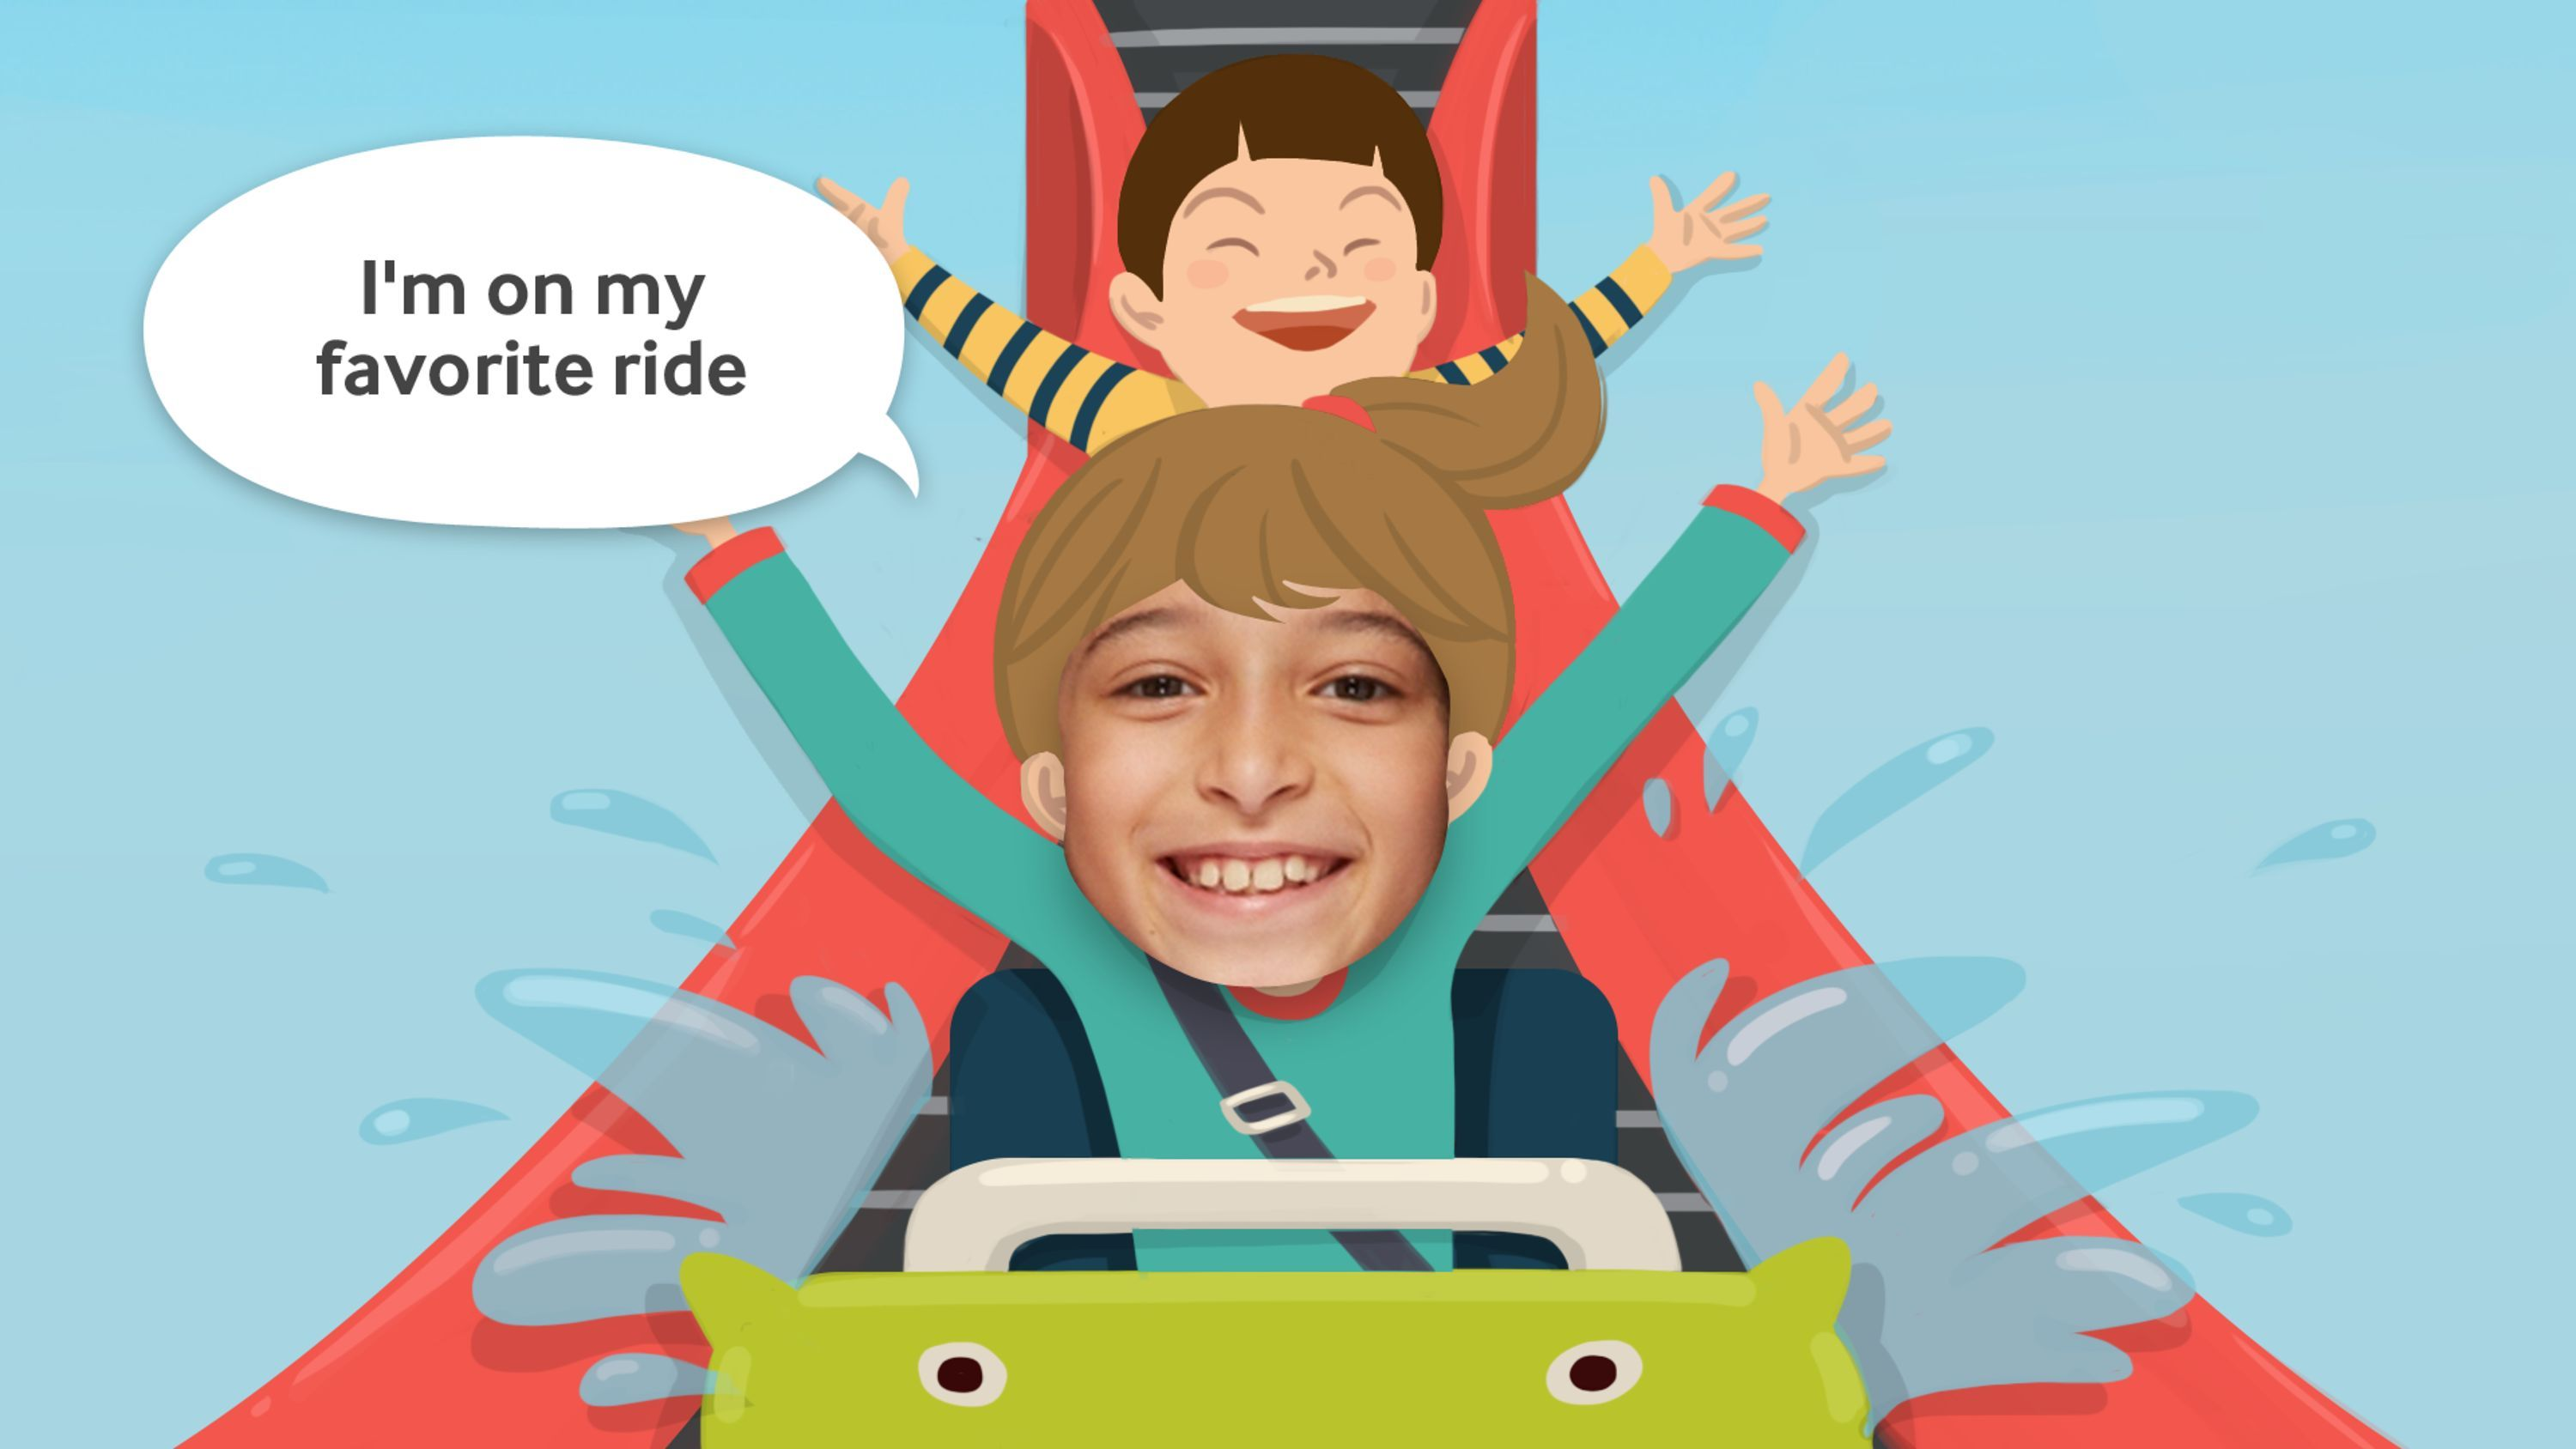 Look at Me | Samsung Social Skills Development App for Children | Award-winning Mobile Marketing Apps